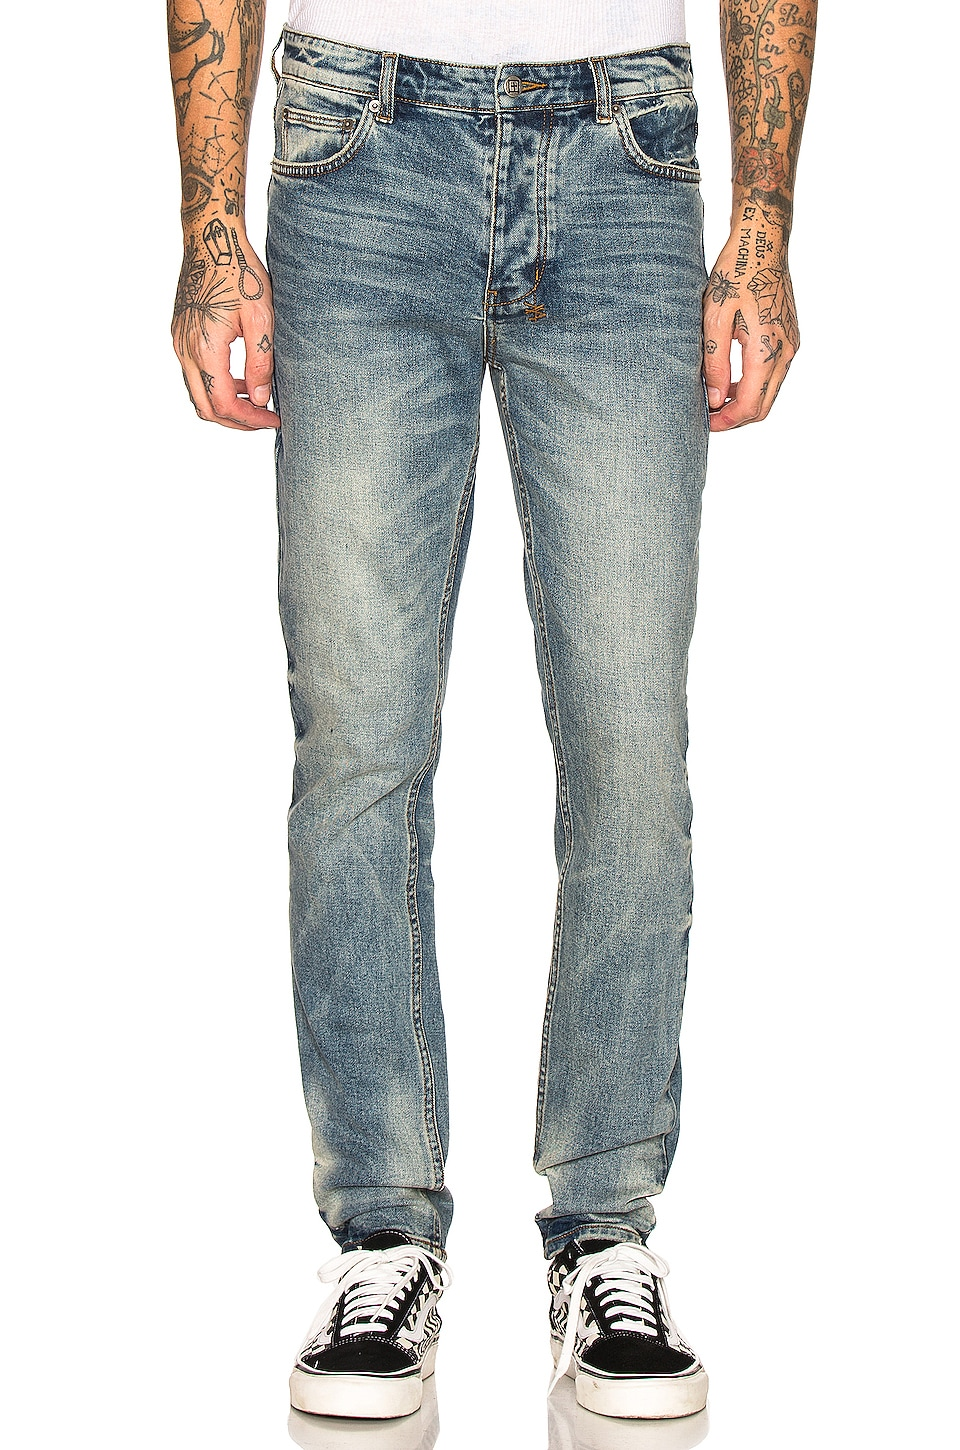 Ksubi Chitch Pure Dynamite Jean in Denim